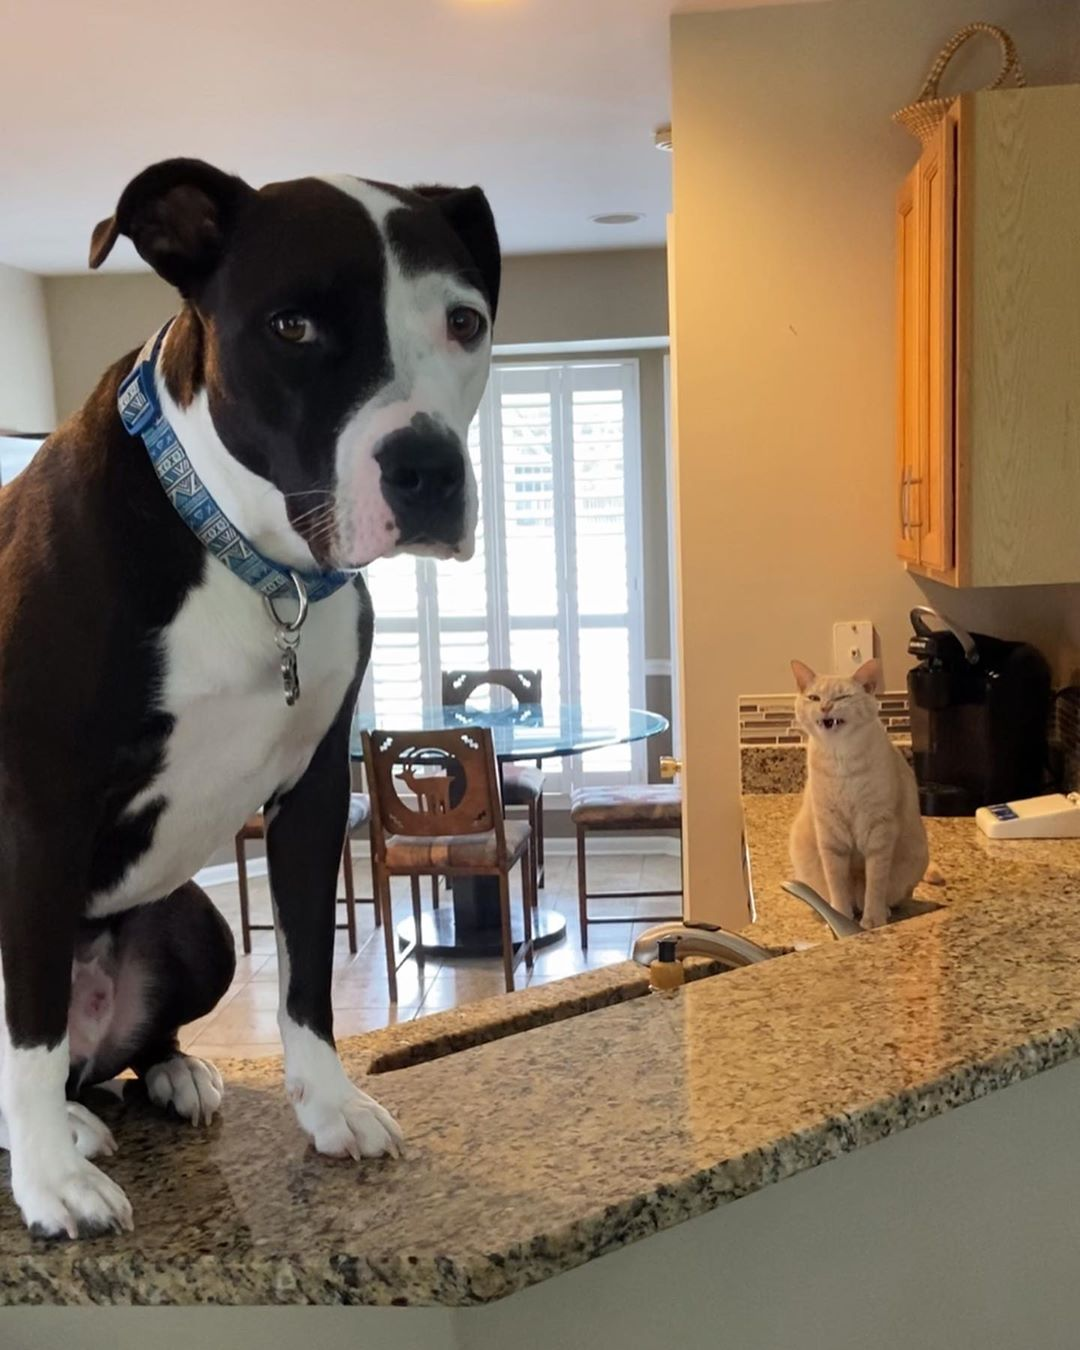 Meet the Dog Who Thinks He's a Cat